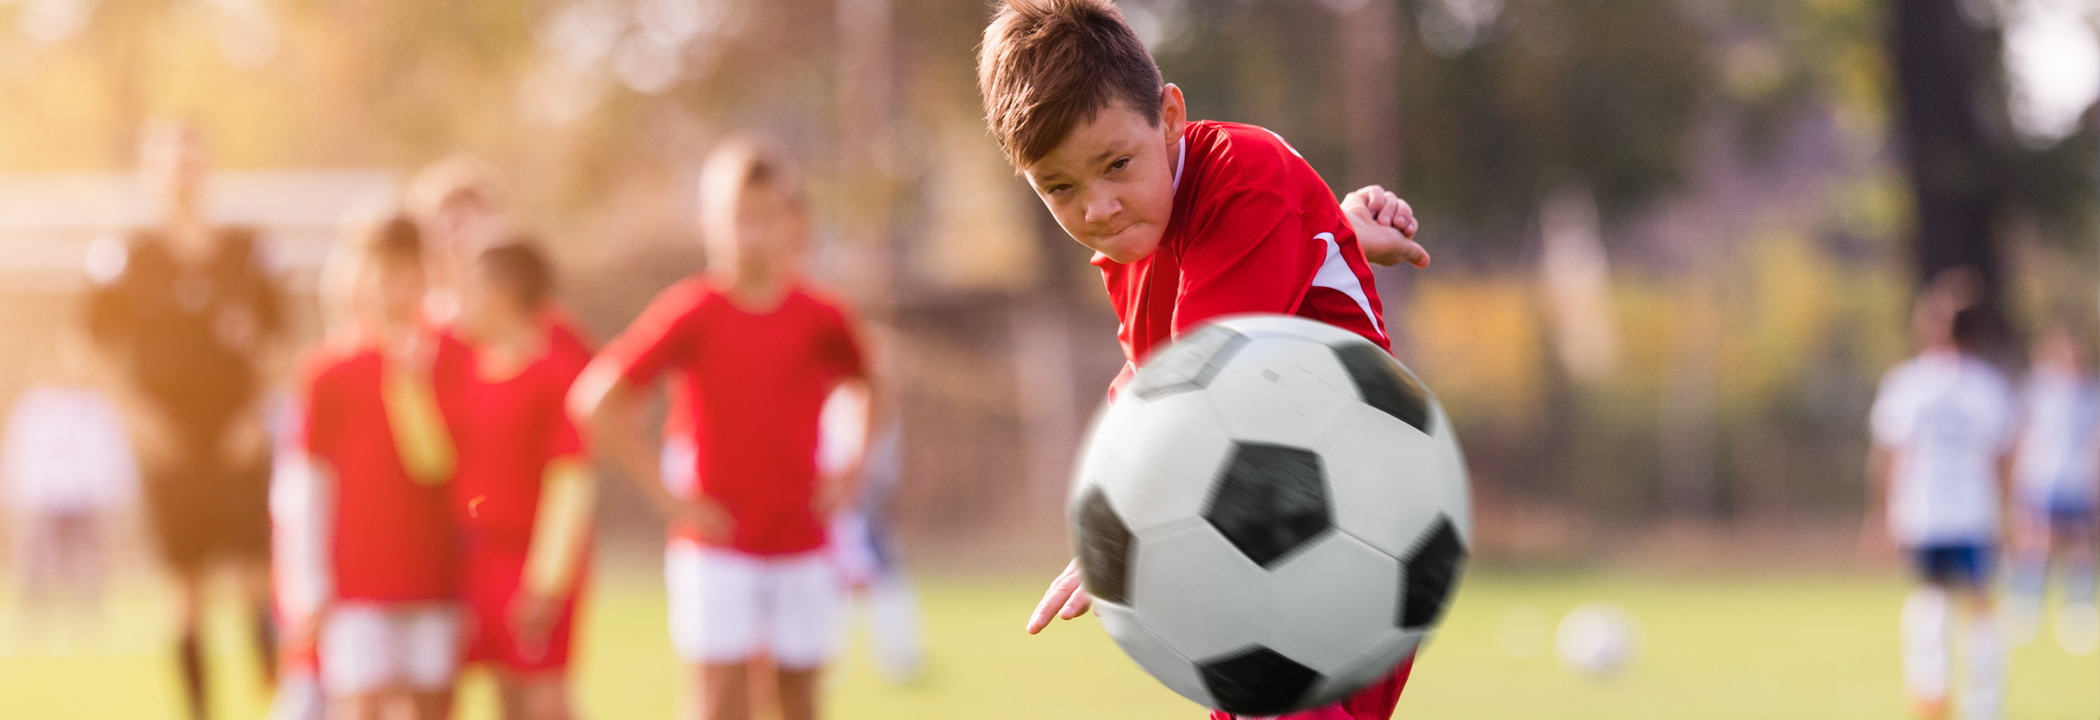 https://www.optometrists.org/findeyedoctordirectory/templateresources/carousel/sports-vision-training-children-soccer_CROP.jpg